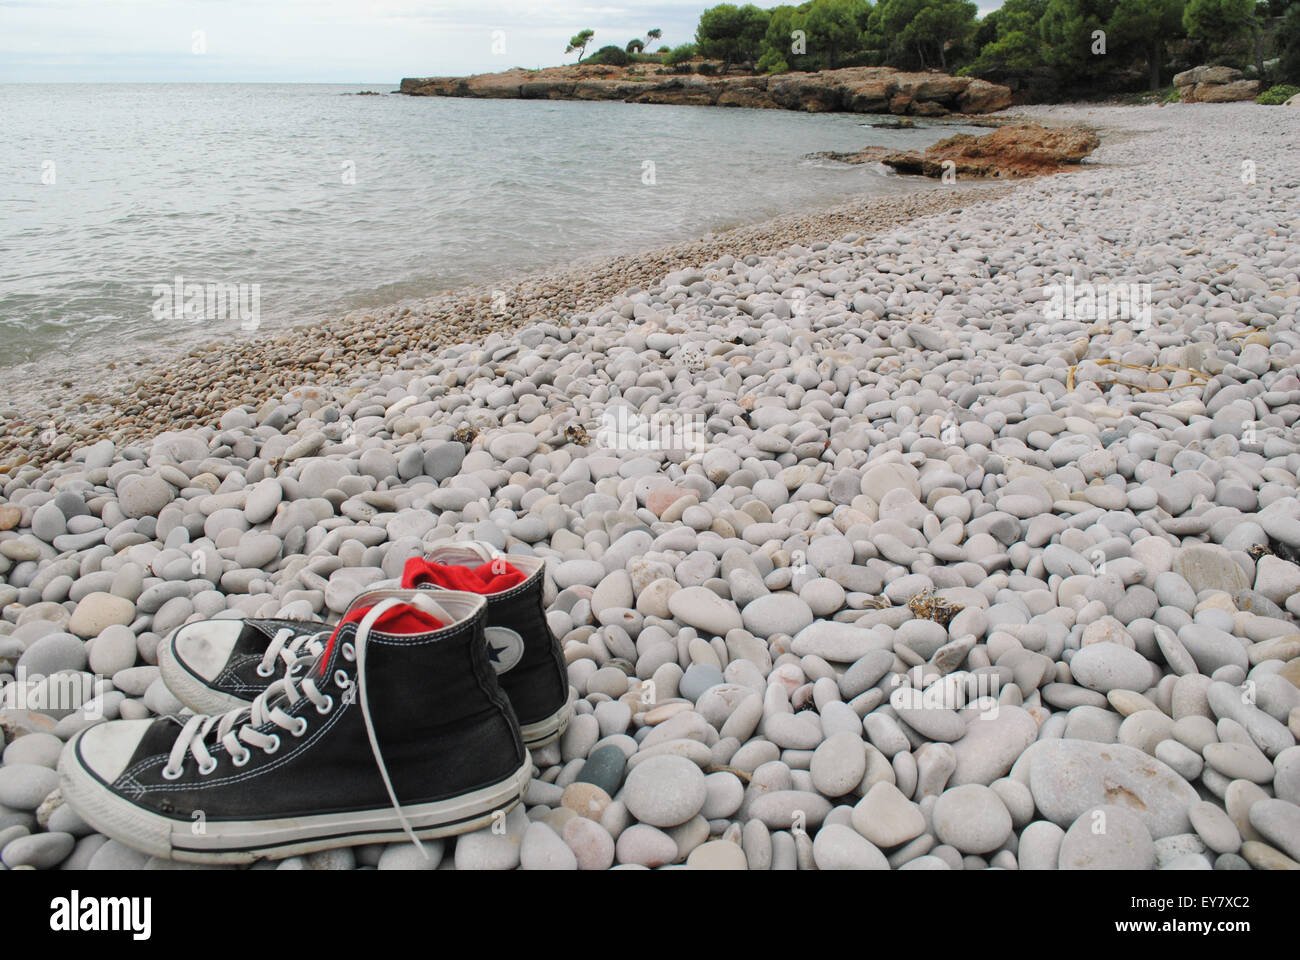 A pair of high top sneakers on a pebble beach in cloudy weather. Stock Photo